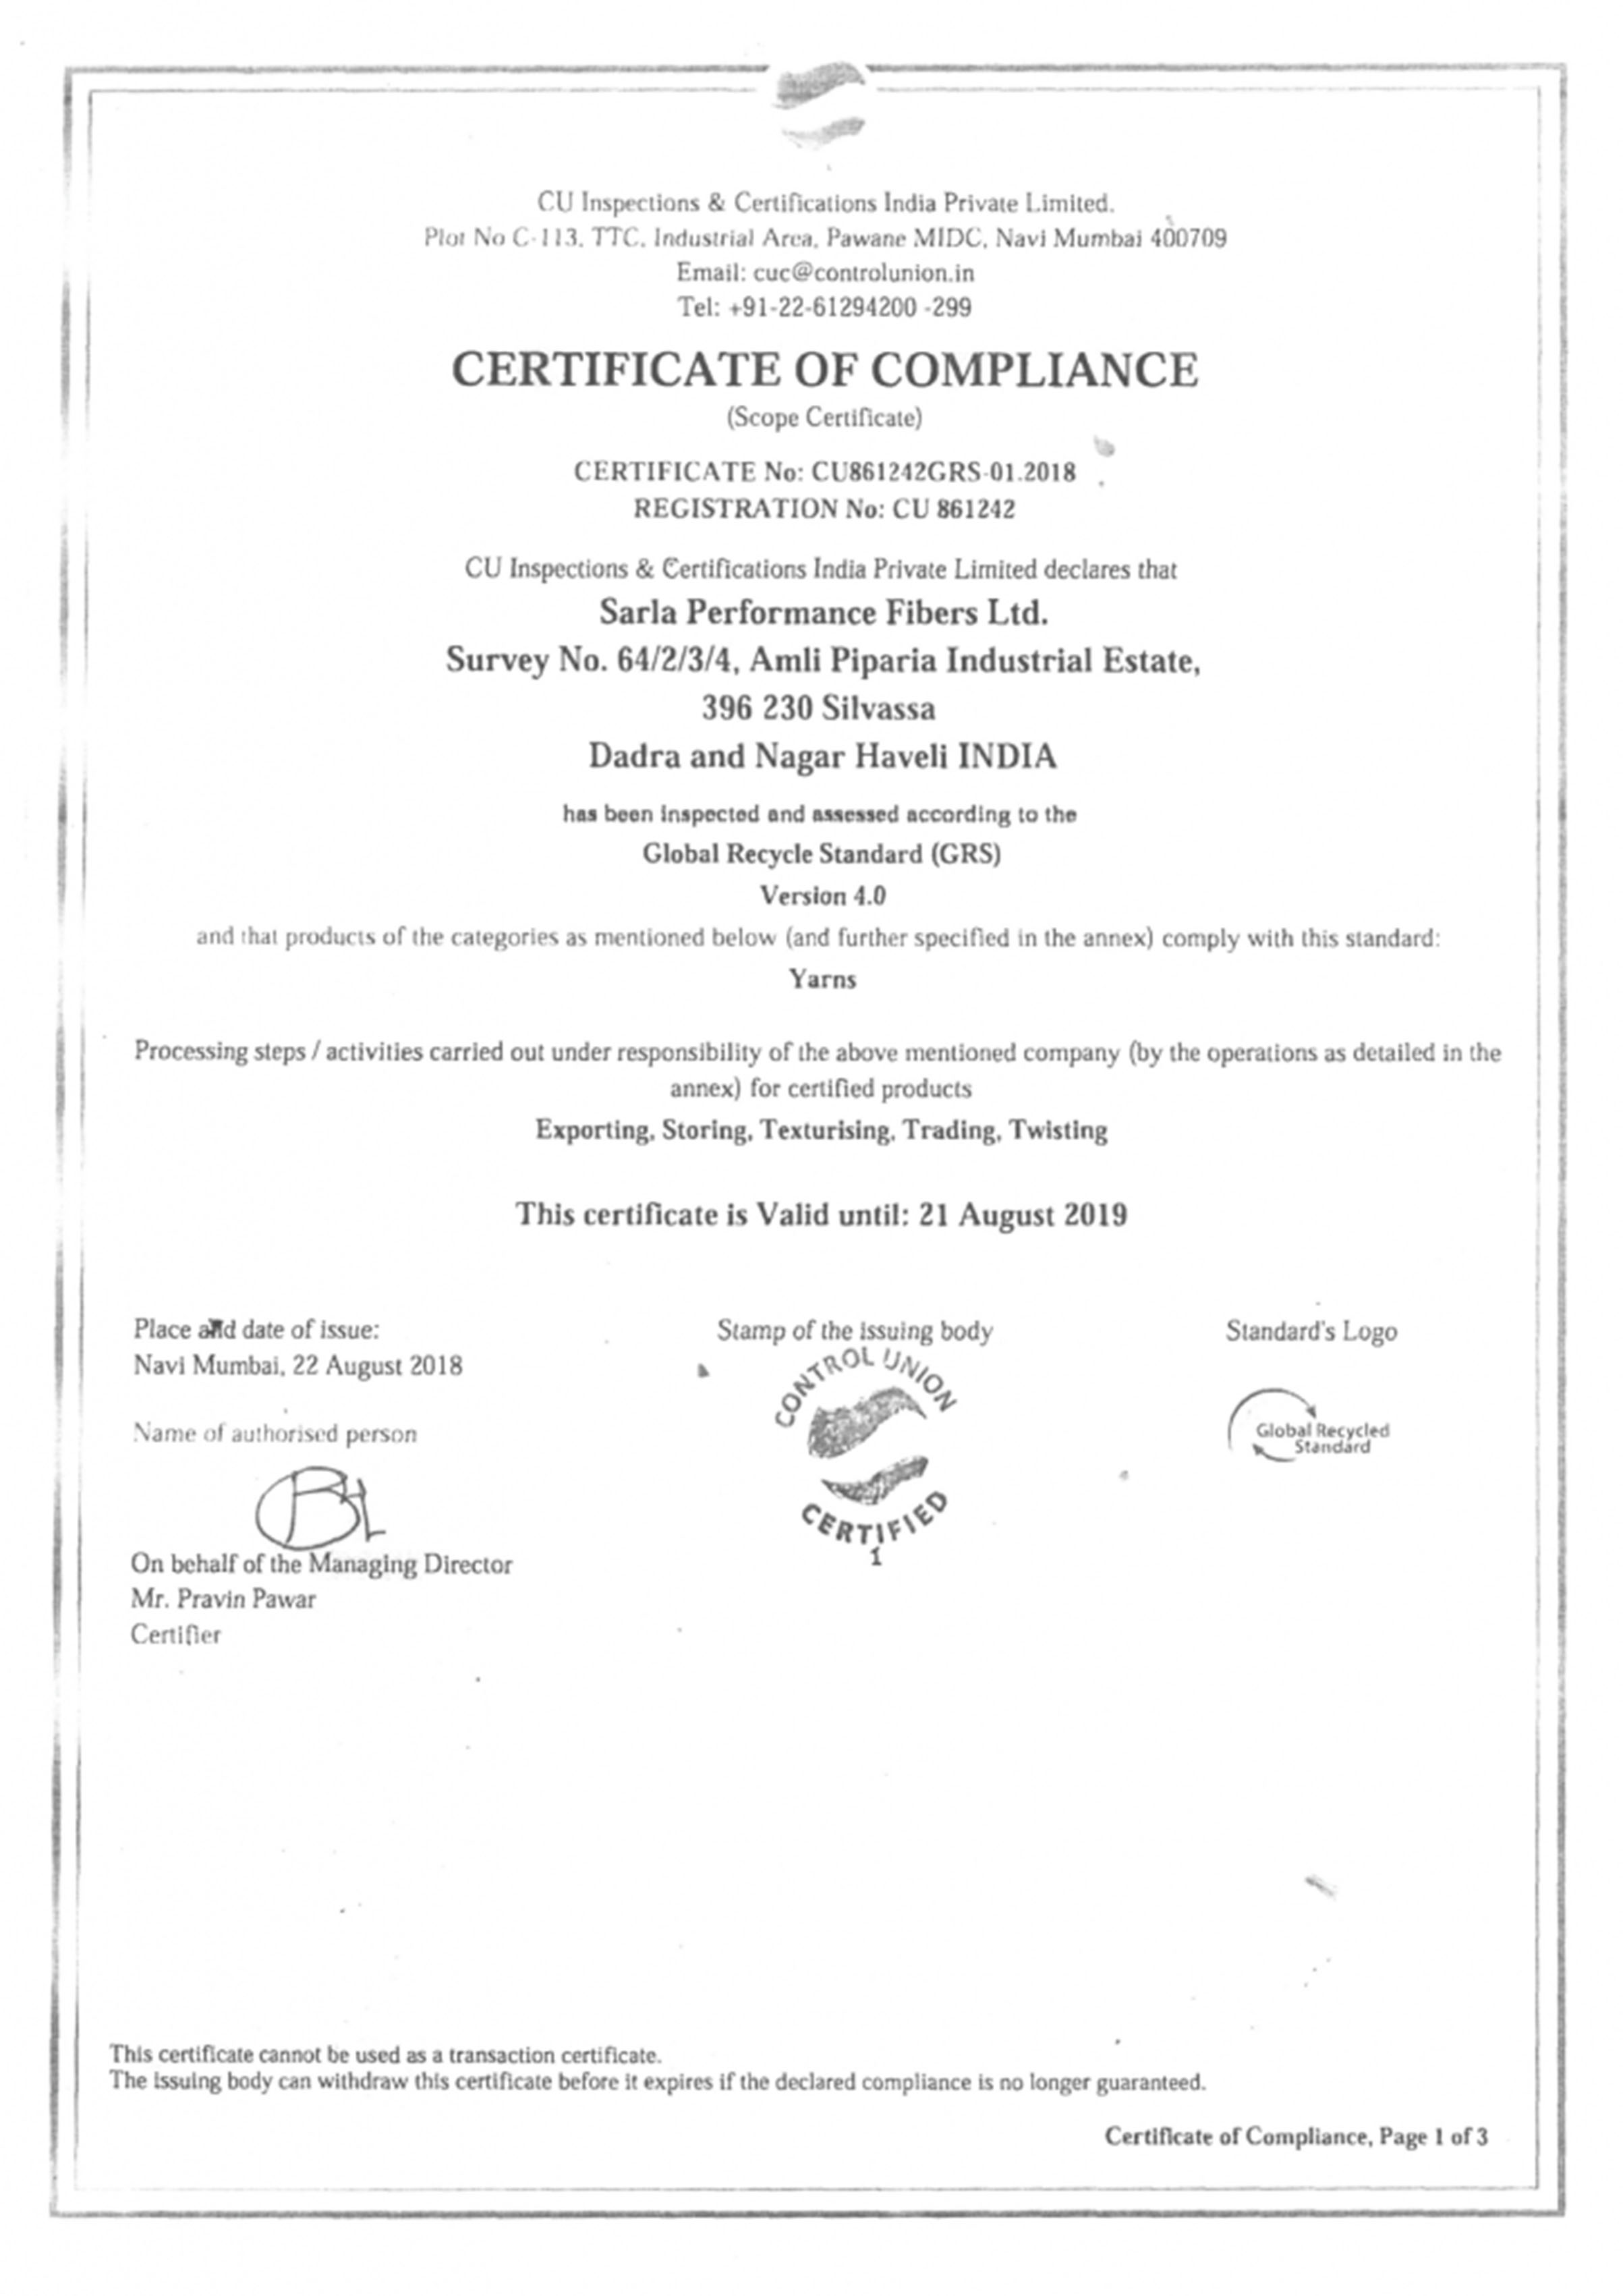 Sarla fibers-Global Recycle Standard (GRS) Certificate